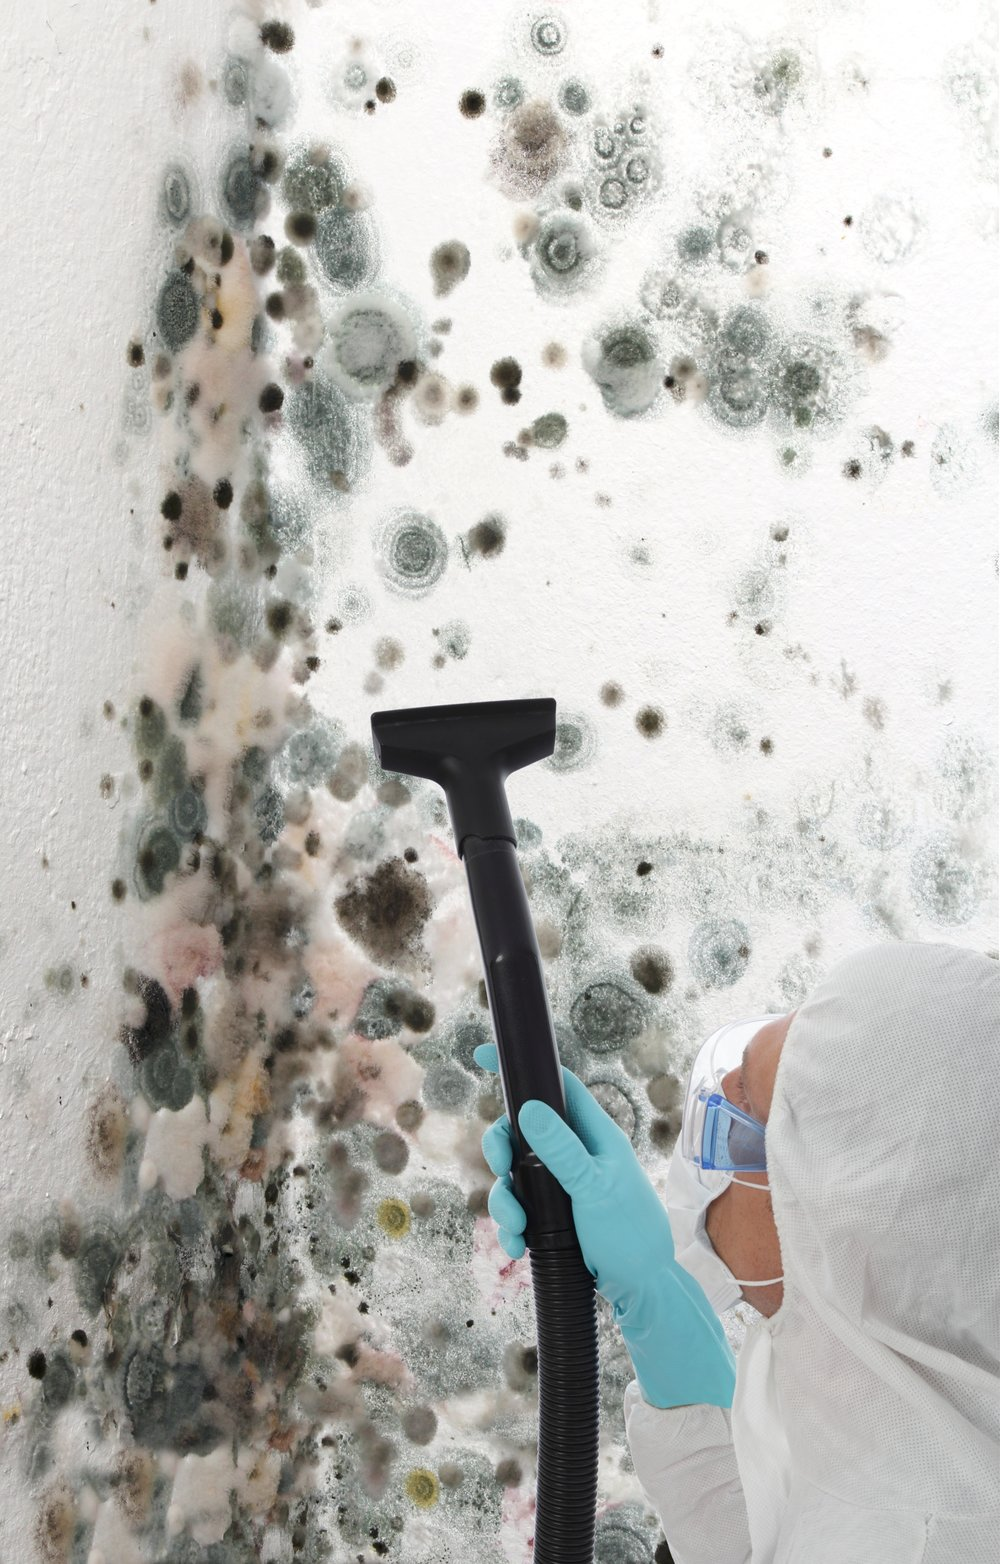 stock-photo-professional-man-in-protective-clothing-using-a-mechanical-cleaner-or-steamer-to-clean-mold-growth-104287211.jpg